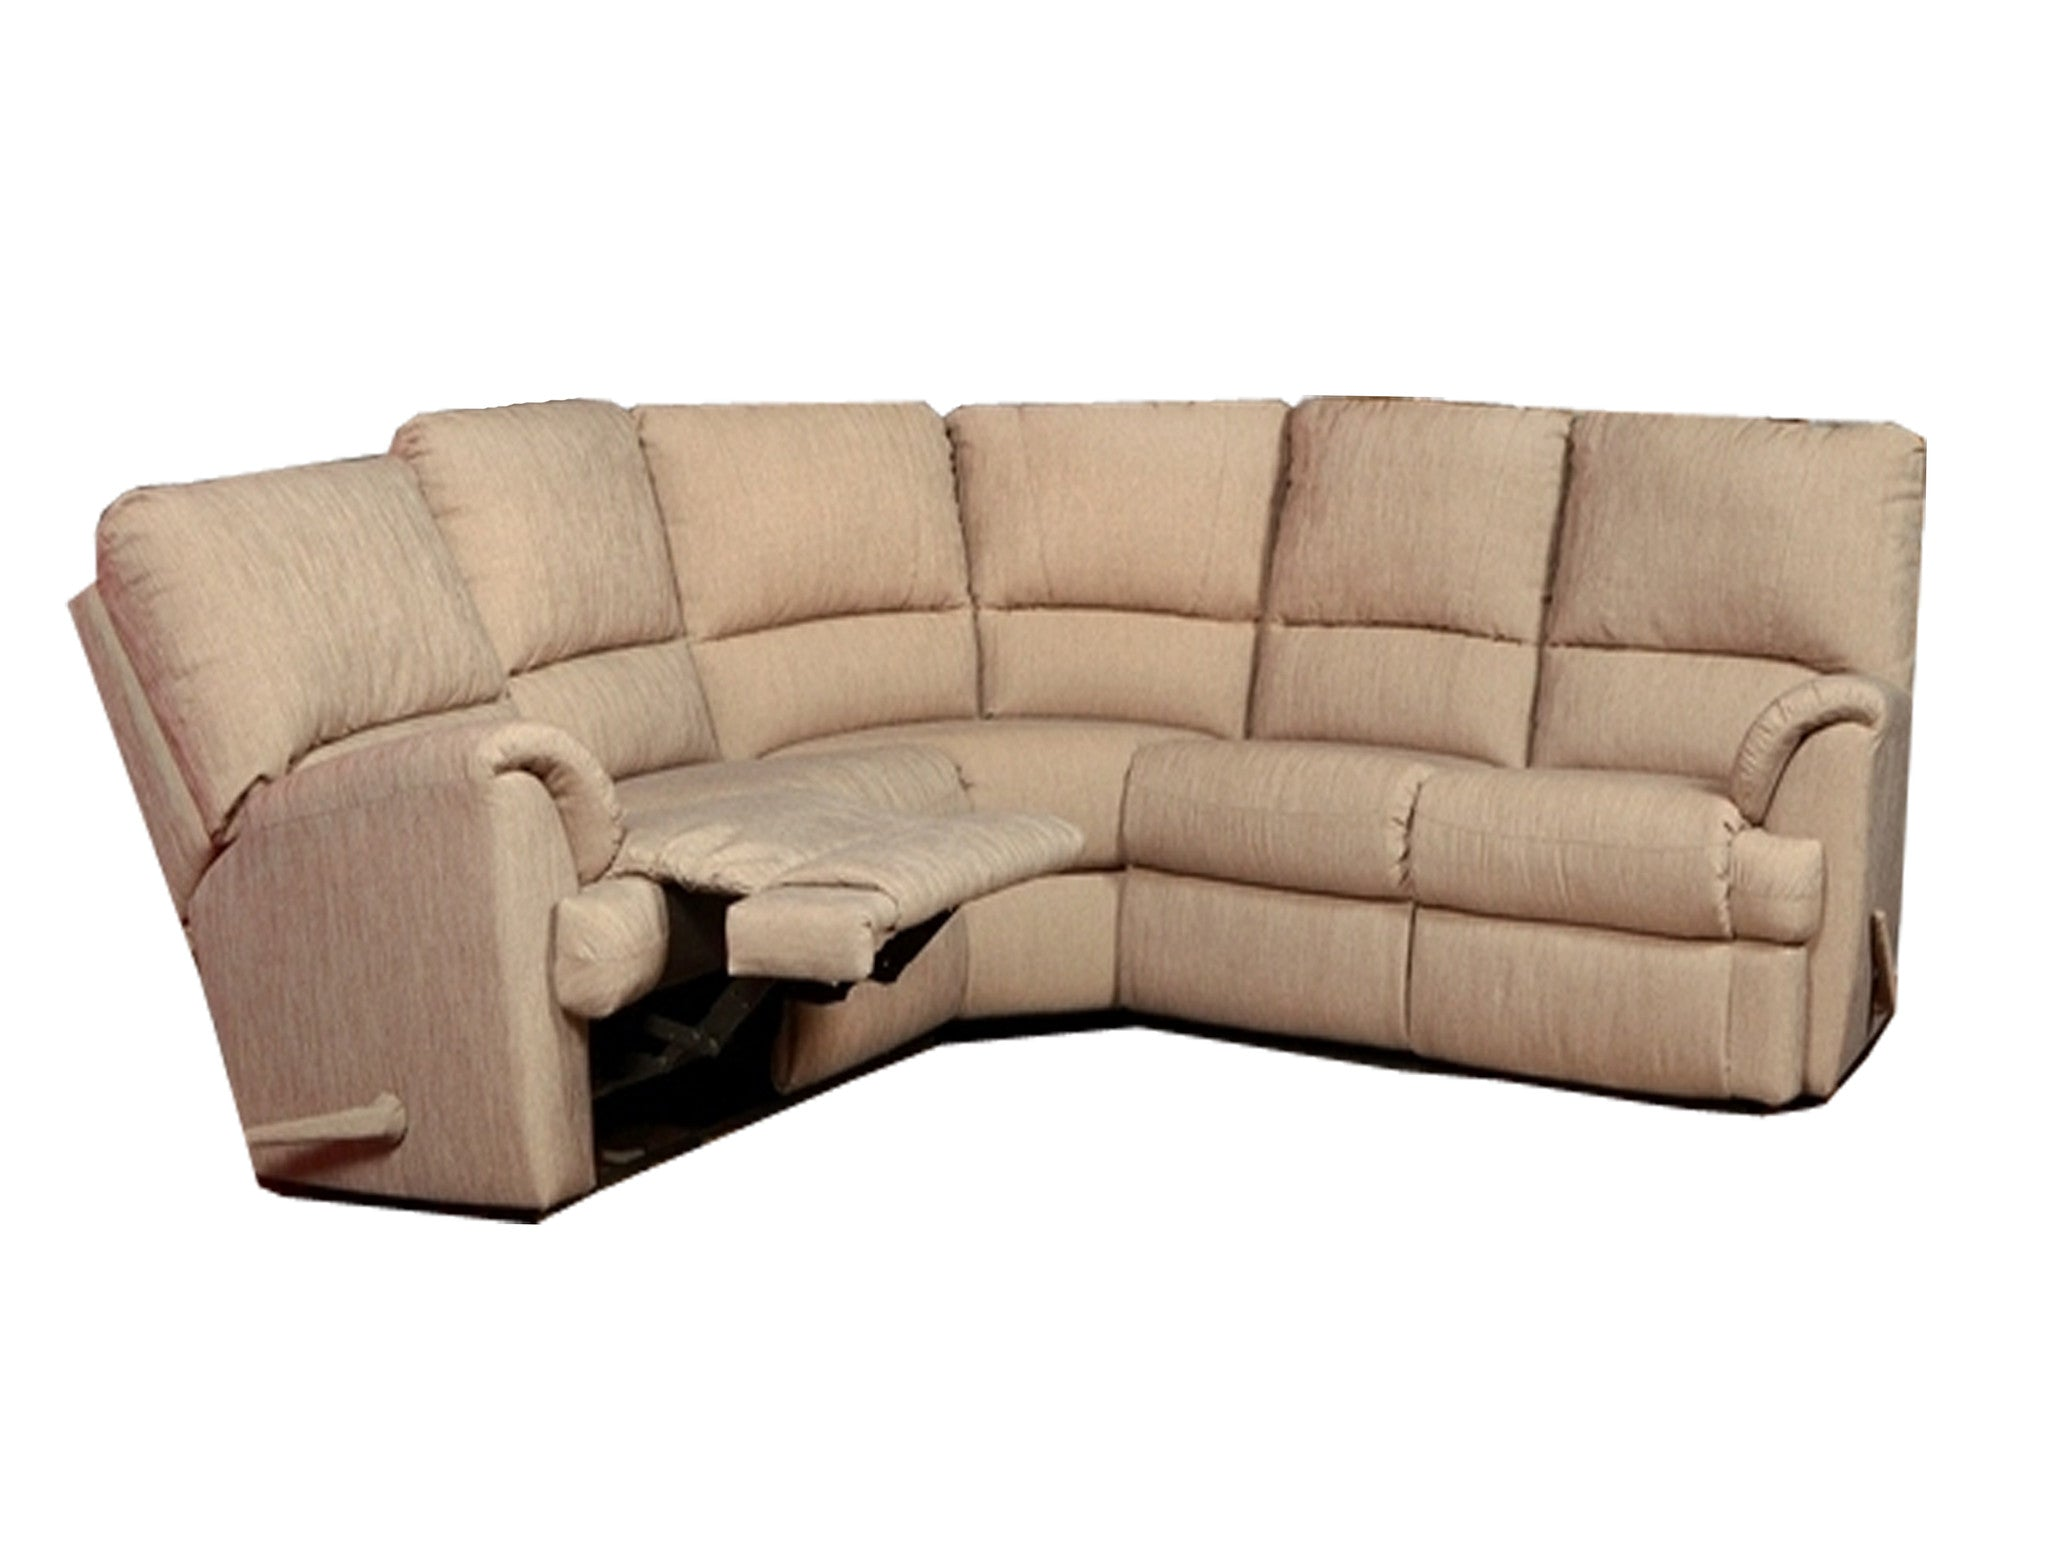 Leather Sectional Frederick s Furniture Gallery